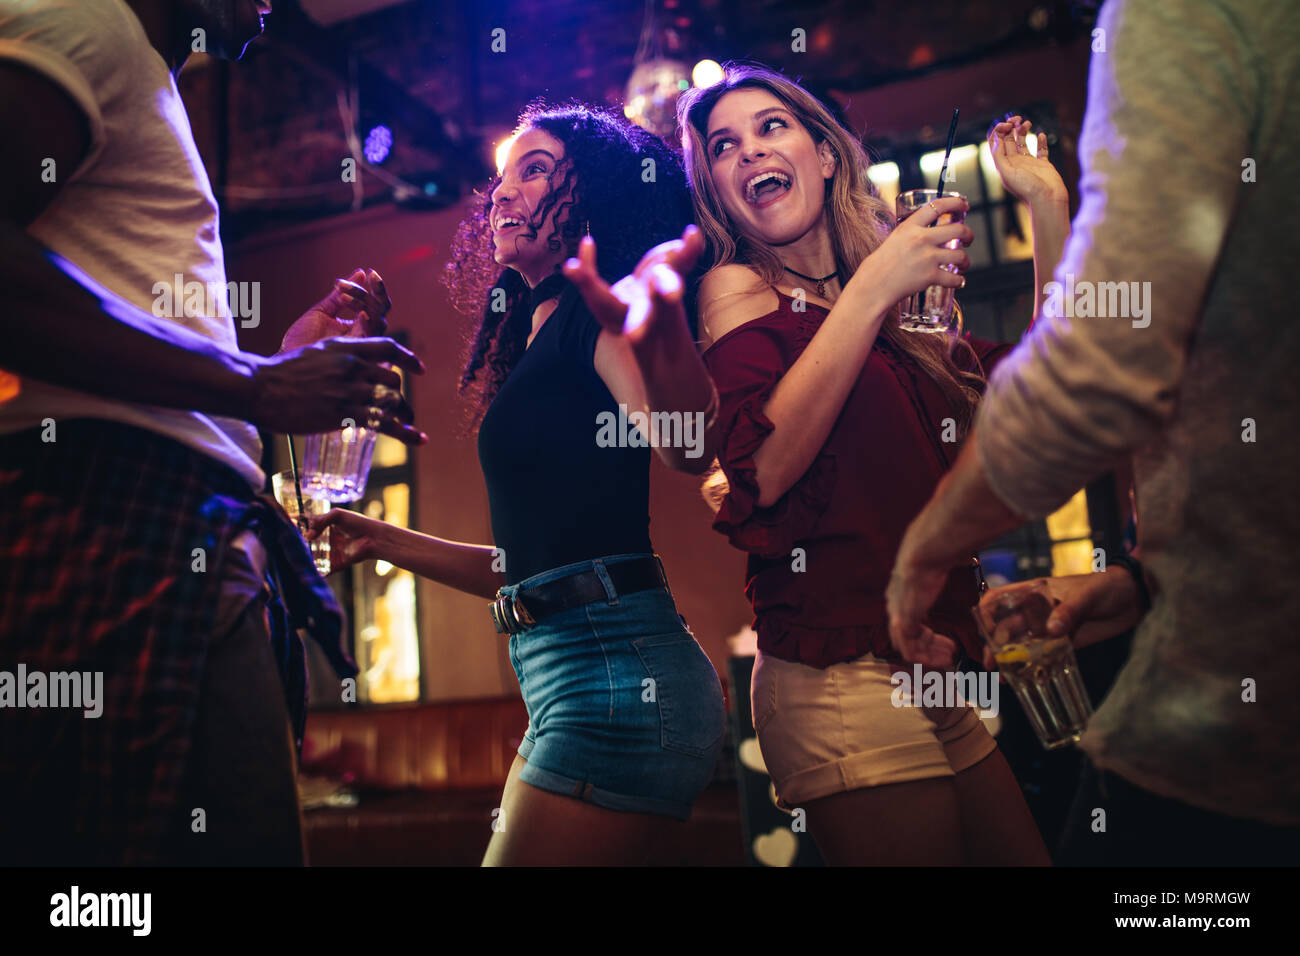 Happy young women dancing and partying with male friends at nightclub. Group of friends enjoying at bar with drinks. - Stock Image